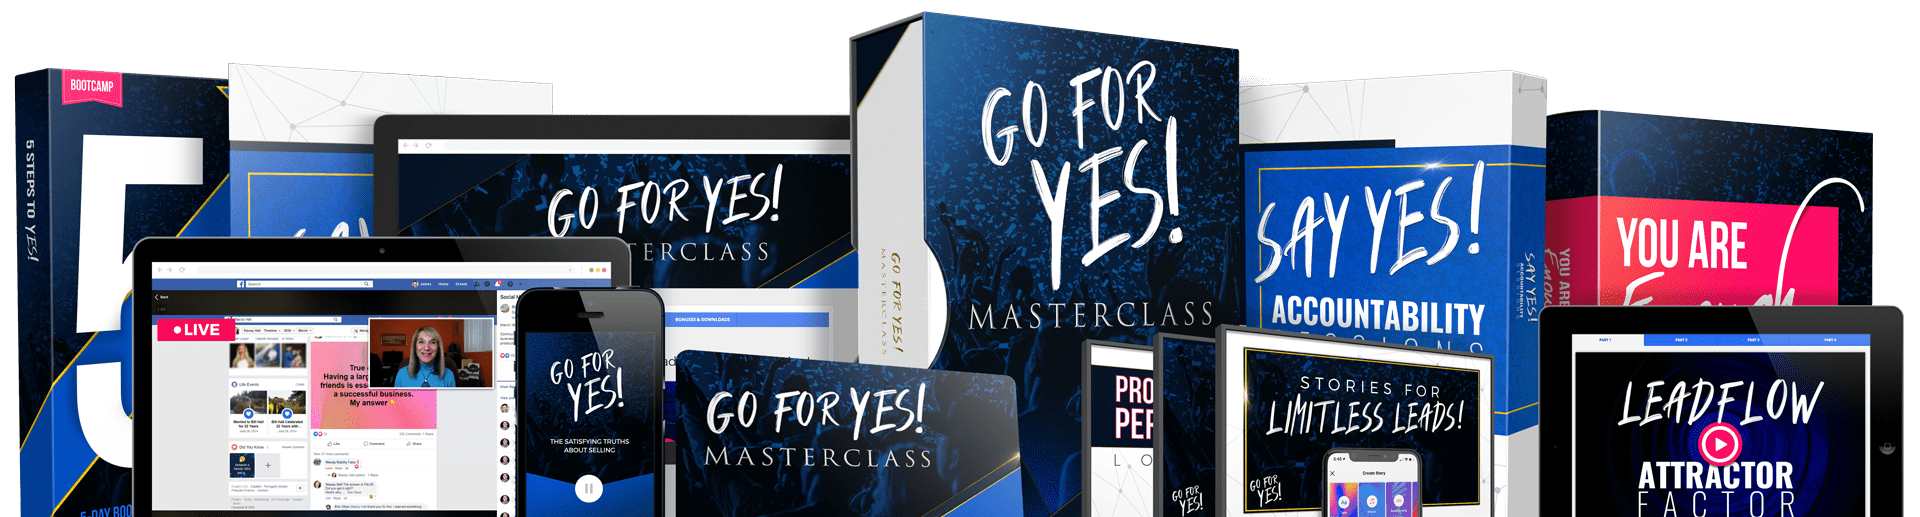 Go For Yes Masterclass